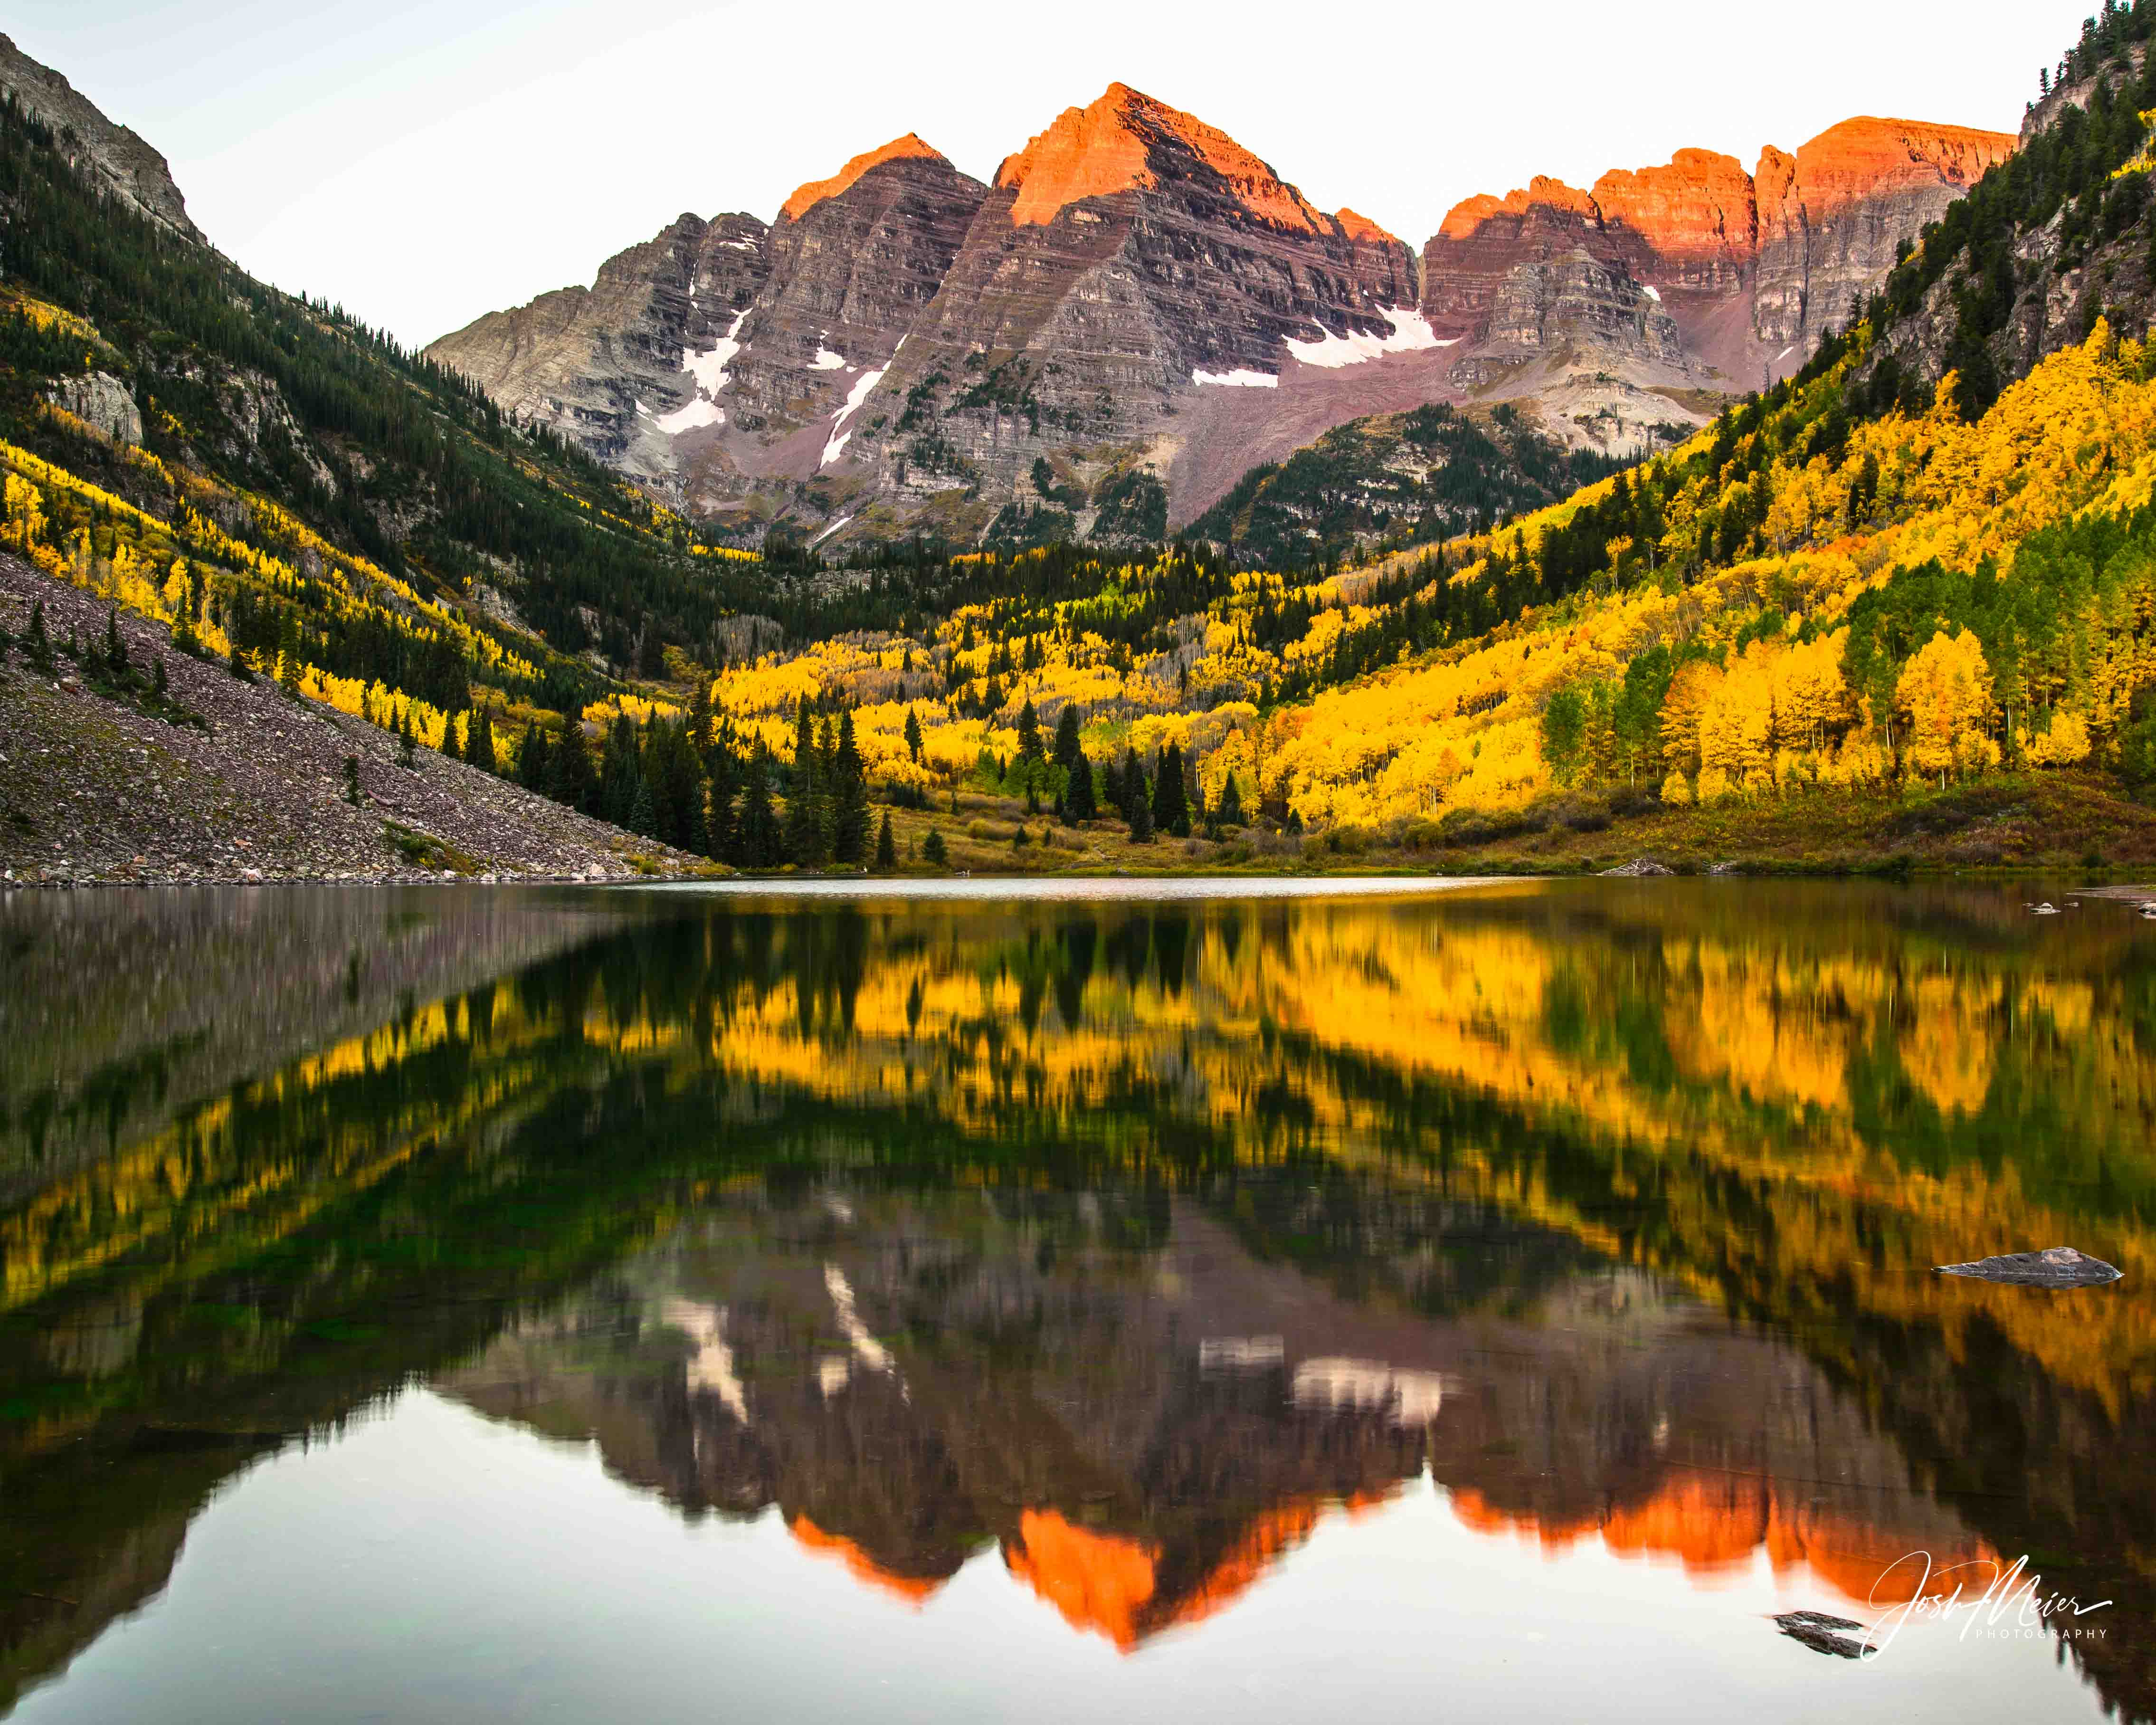 Sunrise alpenglow sets the peaks ablaze in this traditional lakeside view of the iconic Maroon Bells. Said to be the most photographed...